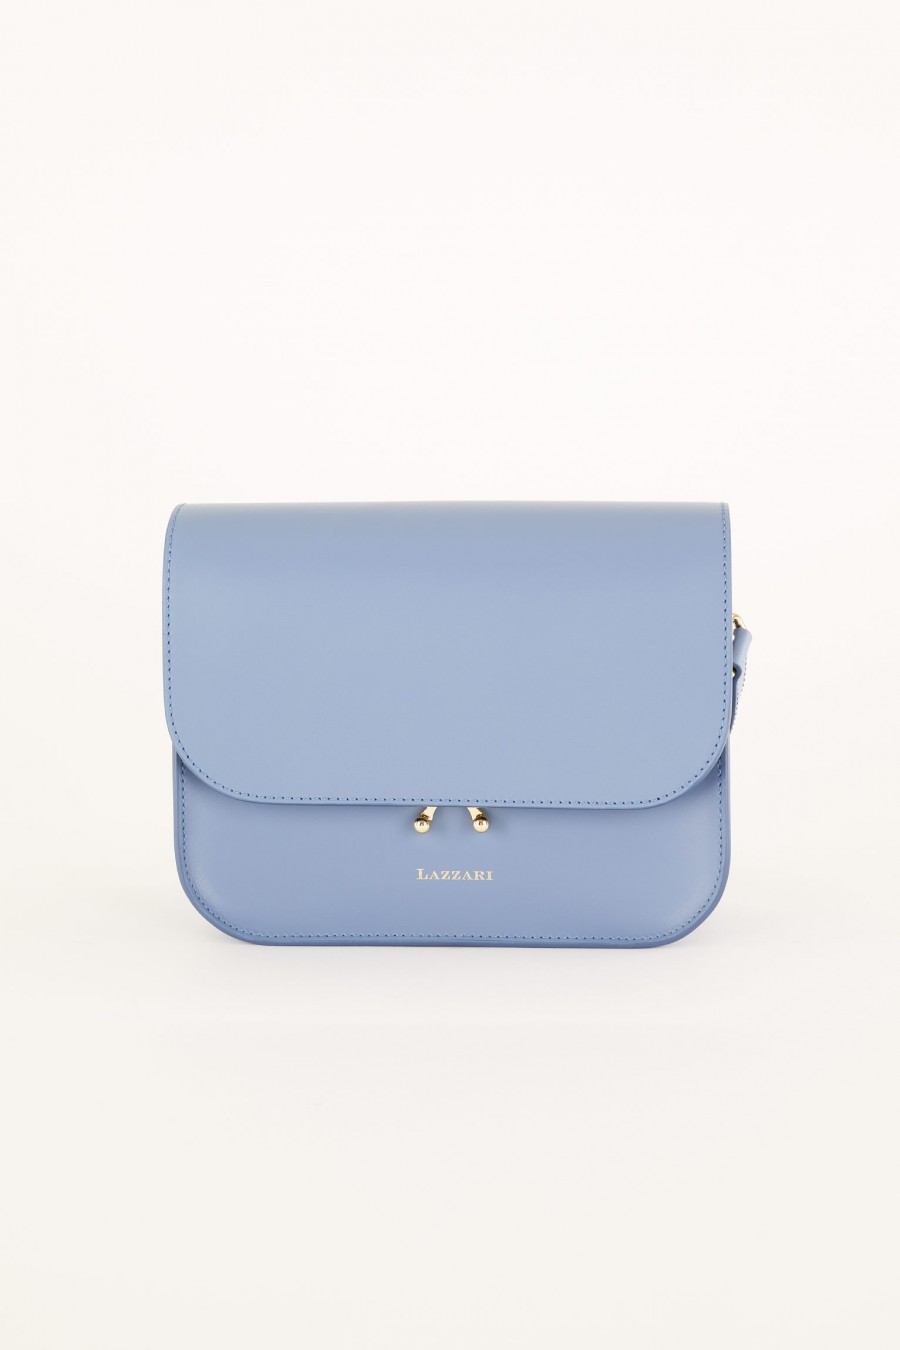 light blue rectangular bag